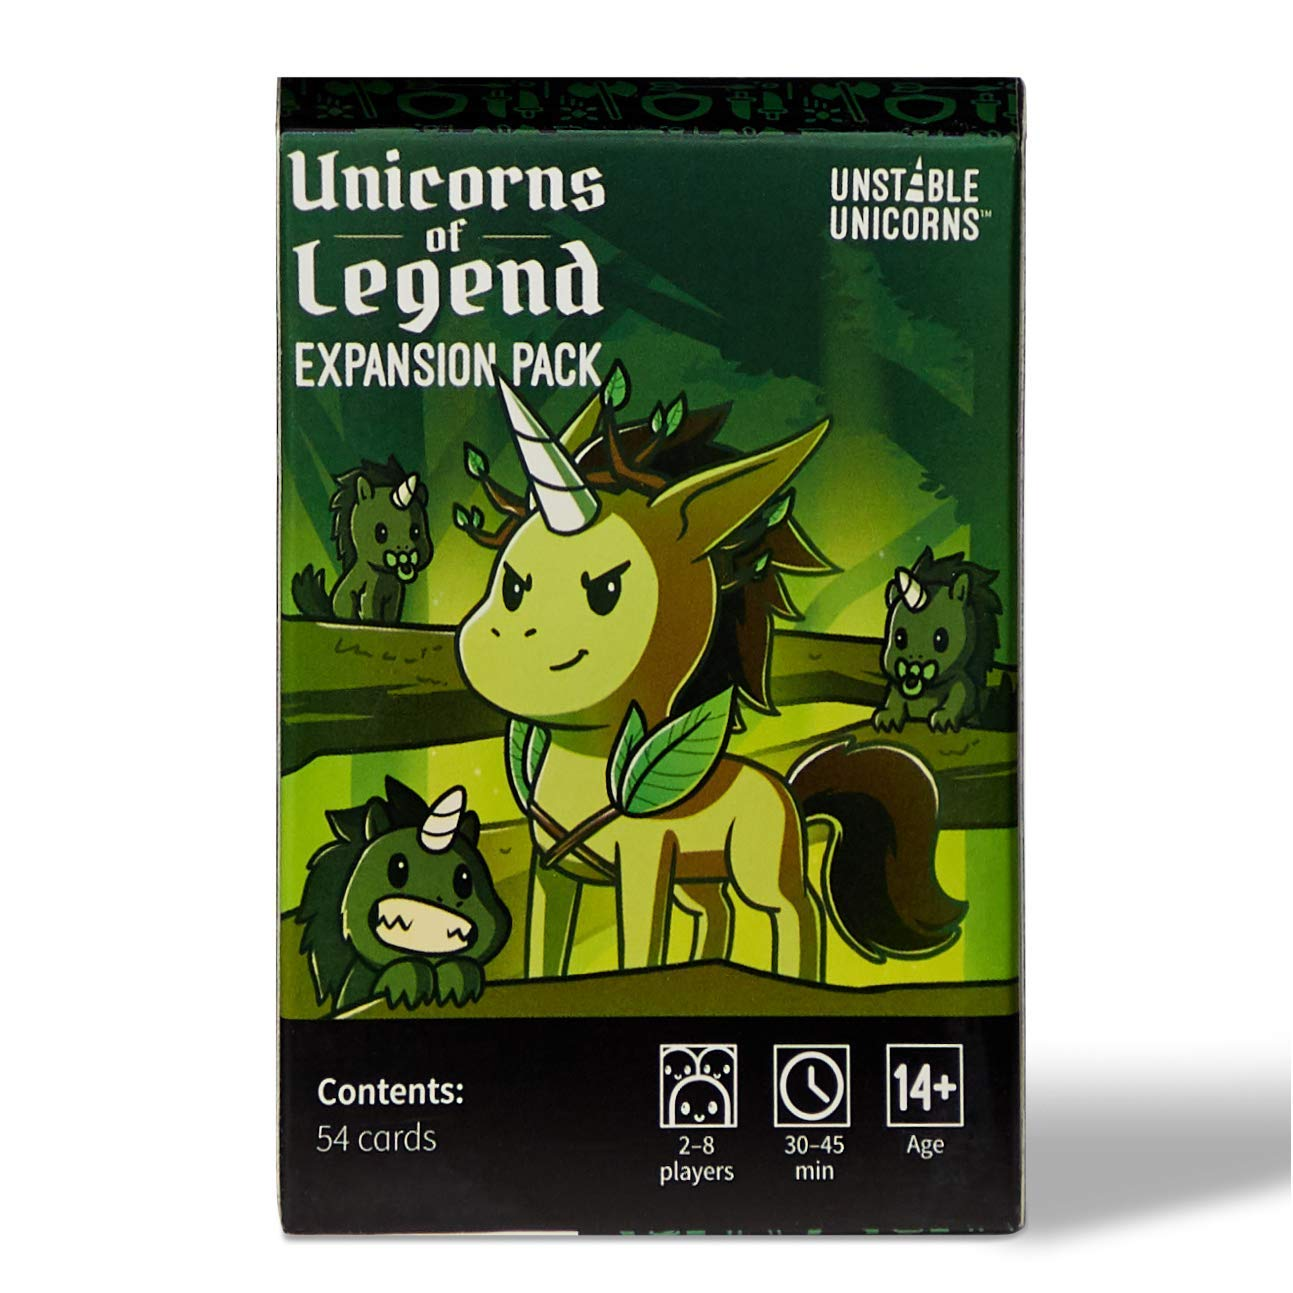 Unstable Unicorns Unicorns of Legend Expansion Pack - designed to be added to your Unstable Unicorns Card Game